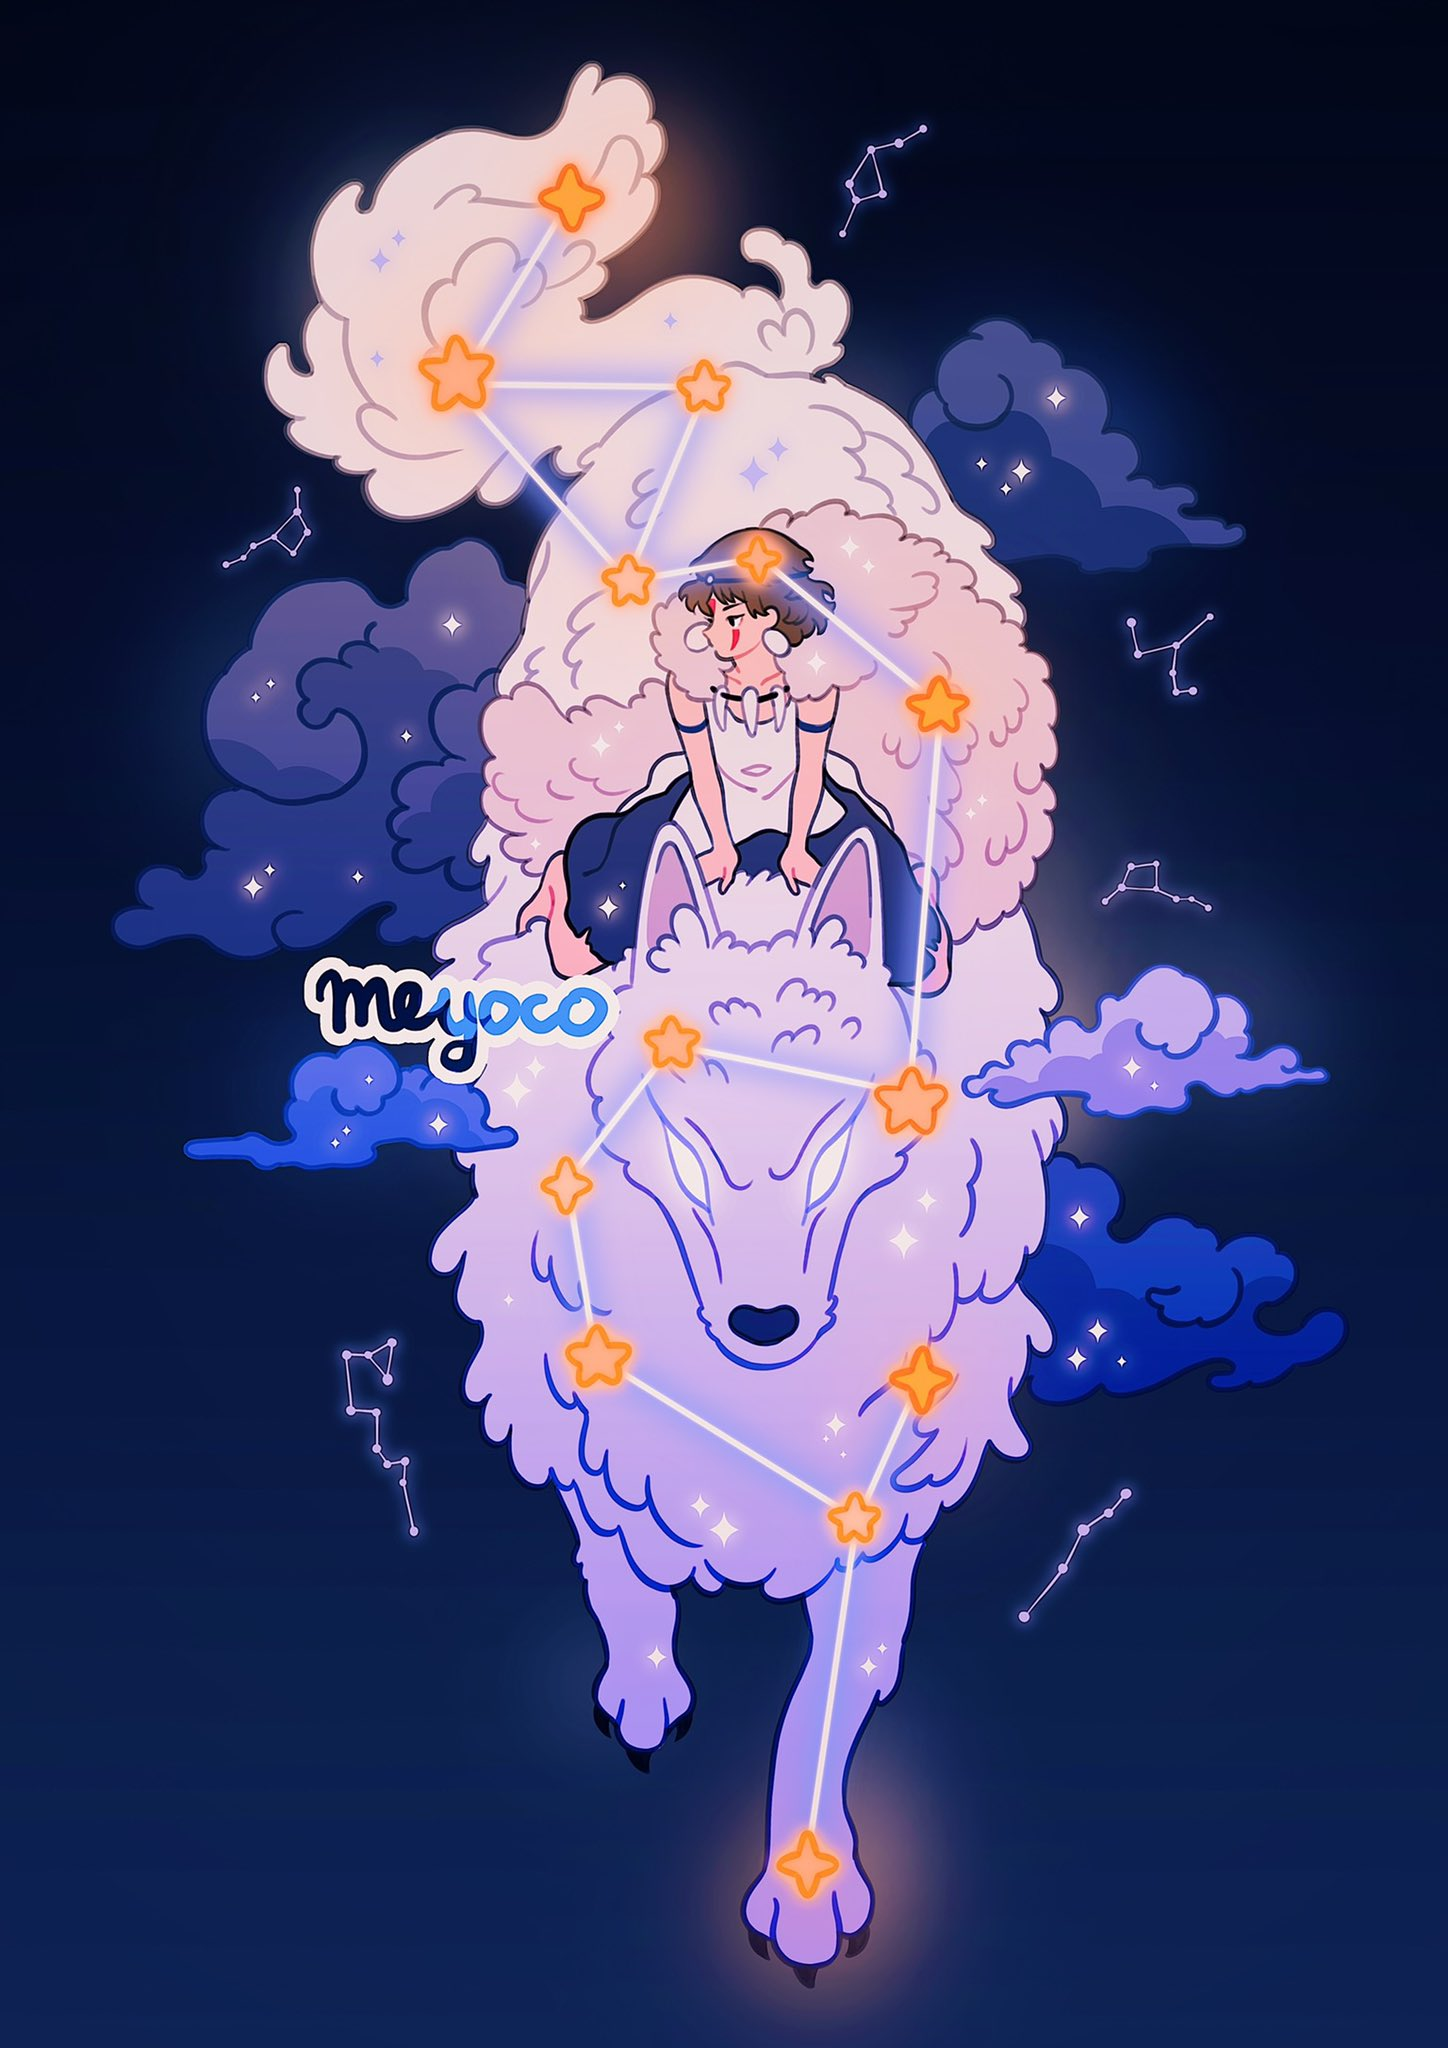 1girl animal artist_name barefoot black_background black_shorts brown_hair clouds constellation earrings facepaint glowing glowing_eyes highres jewelry meyoco mononoke_hime necklace profile riding san_(mononoke_hime) short_hair shorts sparkle tooth_necklace wide_shot wolf